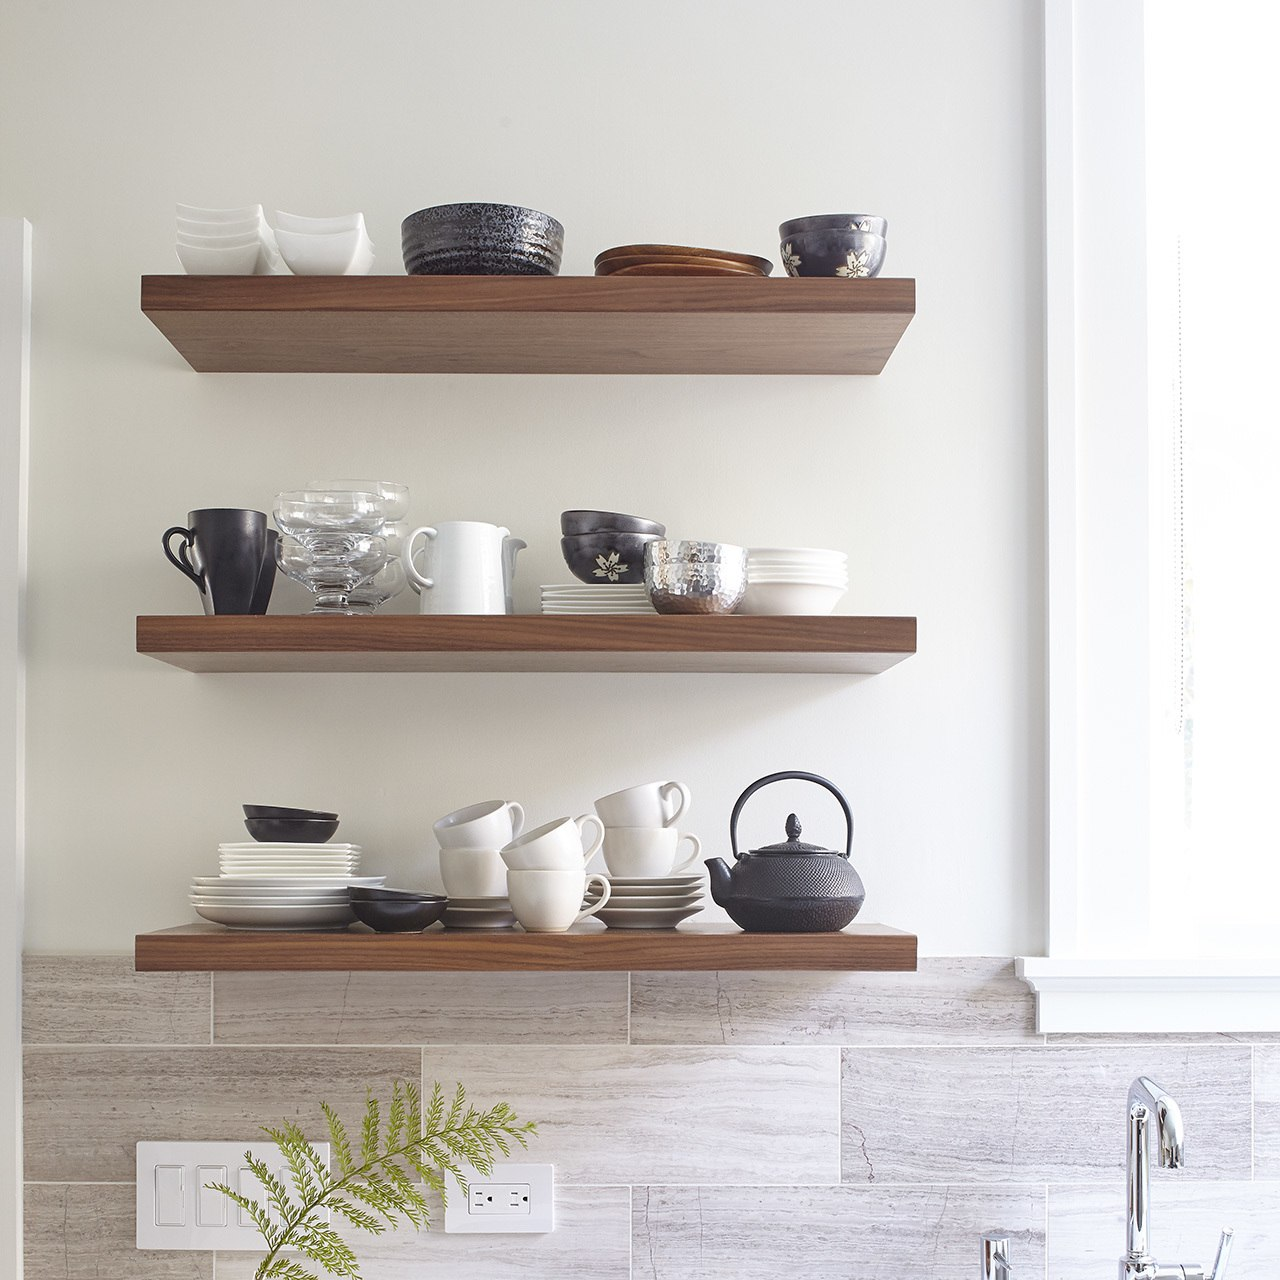 Designer Floating Shelves for the Kitchen